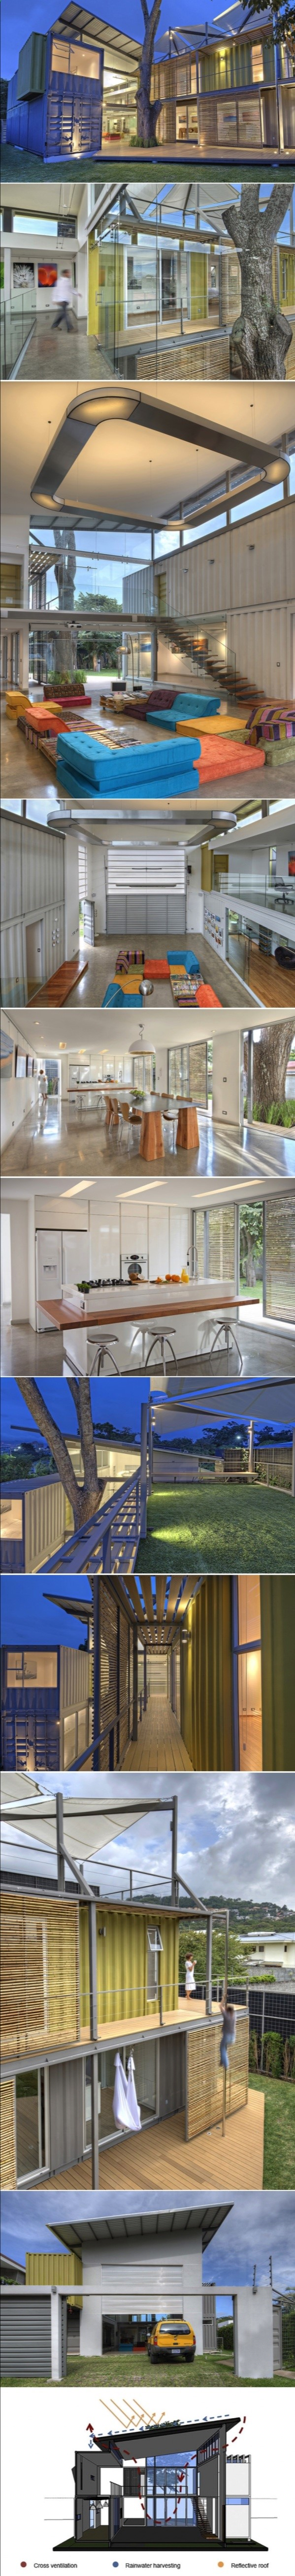 Container house shipping container home infused with sustainable